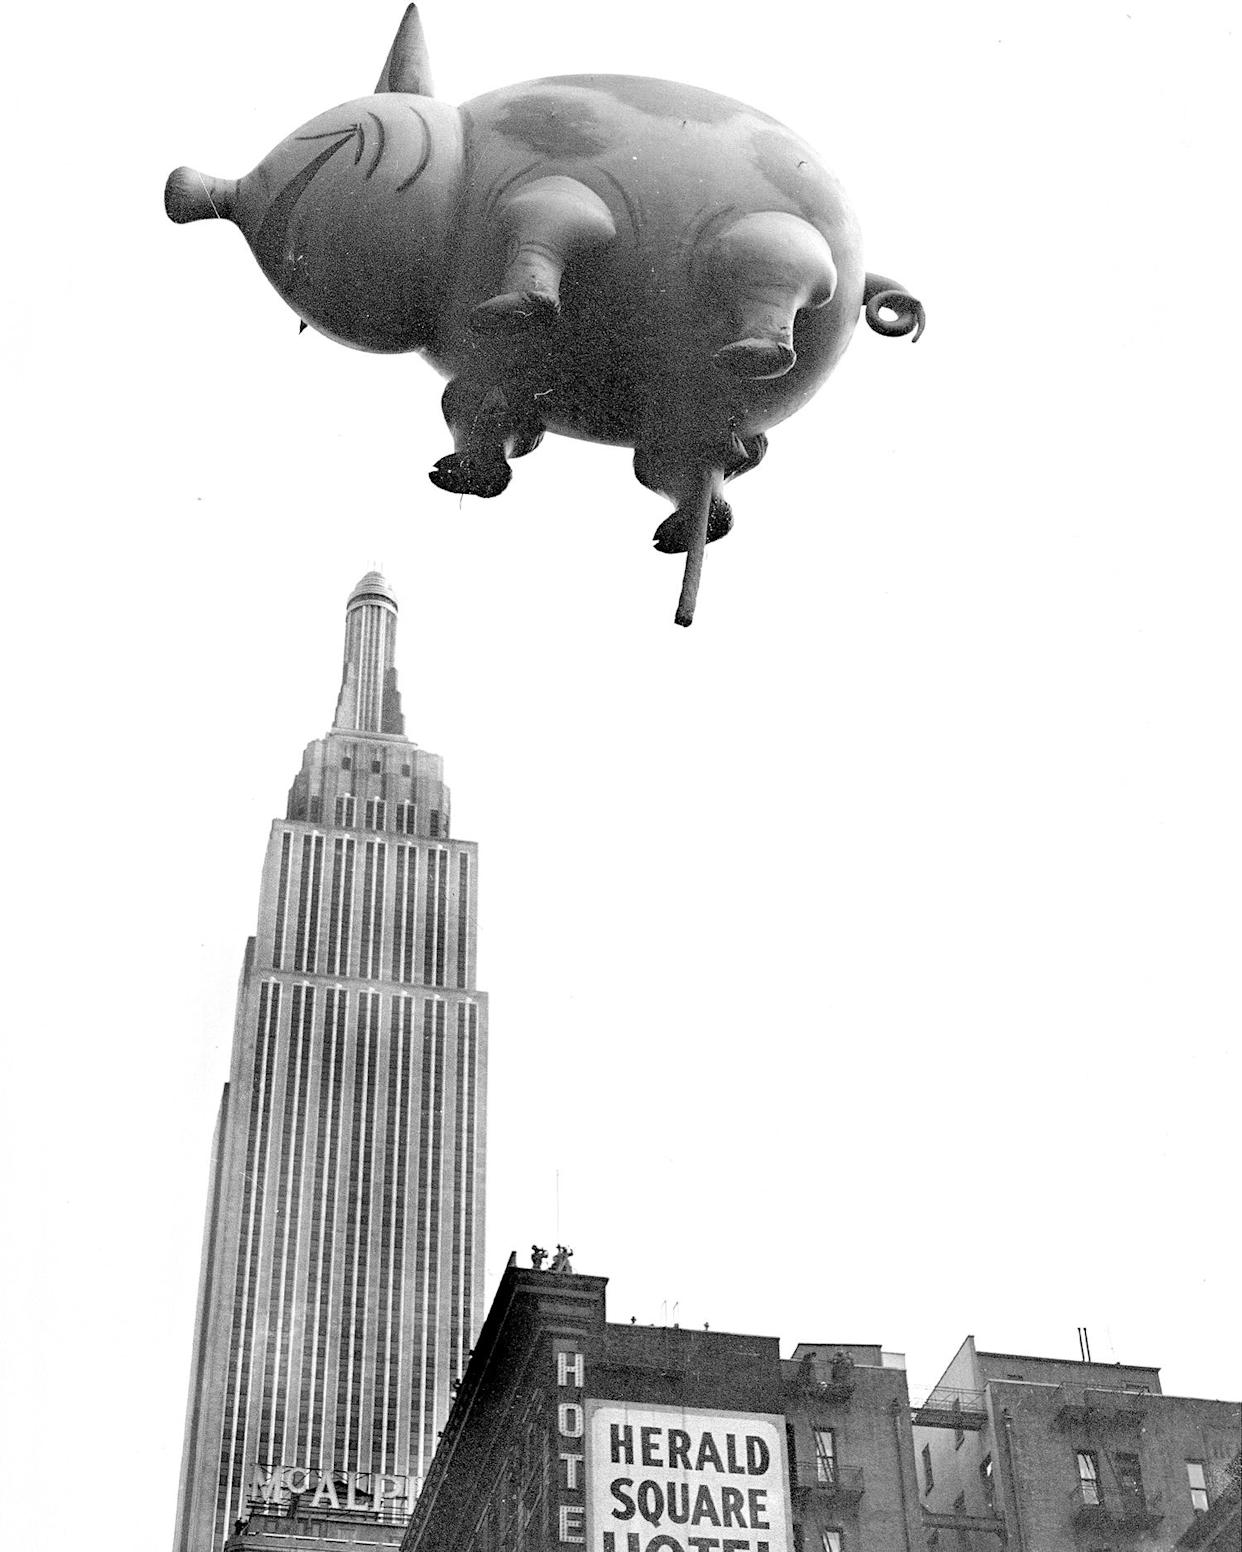 This blind pig is not a speakeasy. He's coming from the 1932 Macy's Thanksgiving Day Parade. And don't let that perspective fool you. Mr. Pig is not really over Empire State Building. (Photo: New York Daily News Archive via Getty Images)